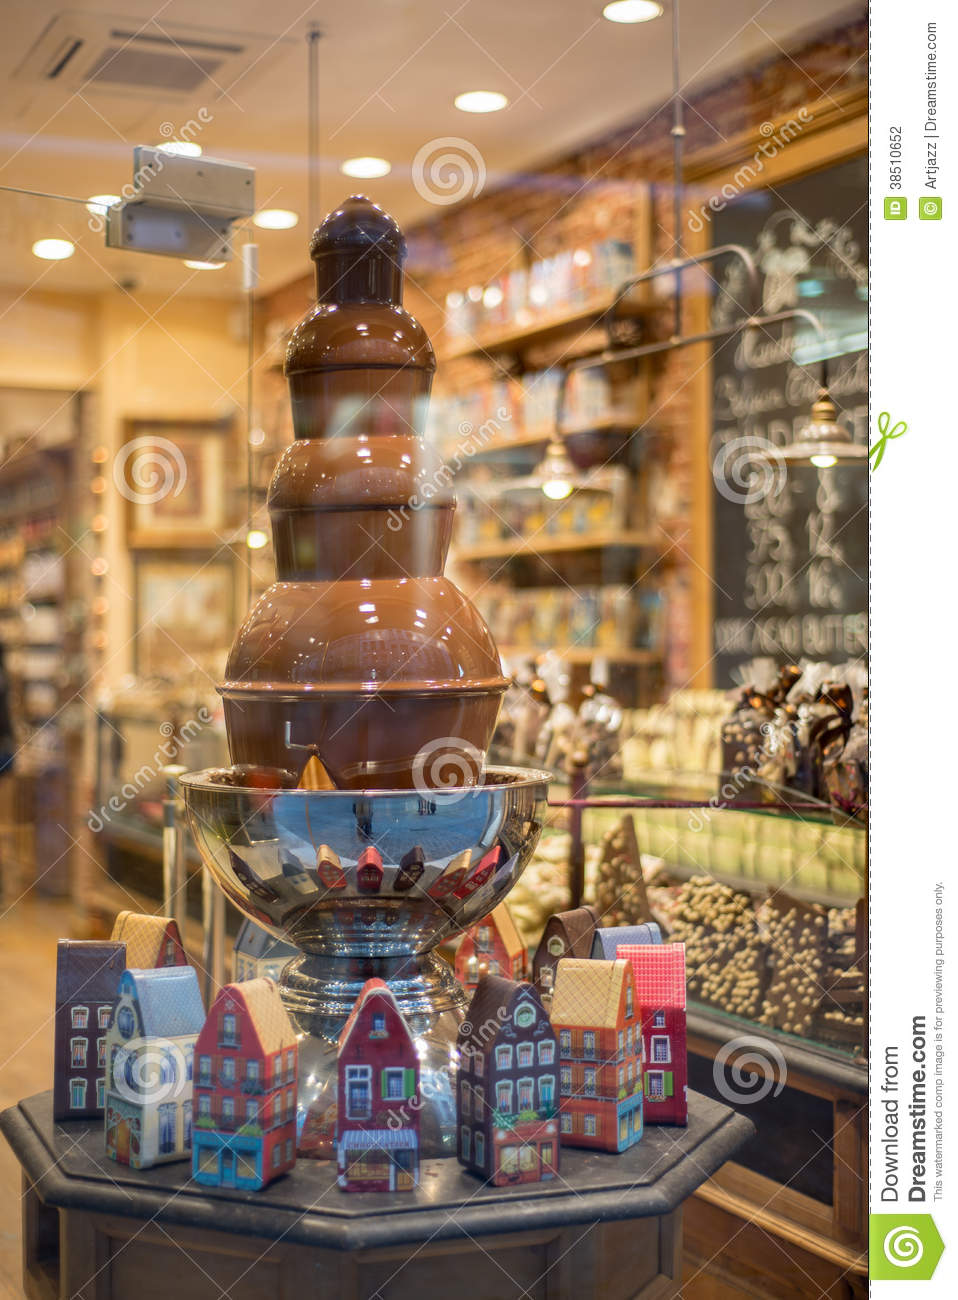 fontaine de chocolat dans la boutique de la belgique photo stock image du humain people 38510652. Black Bedroom Furniture Sets. Home Design Ideas